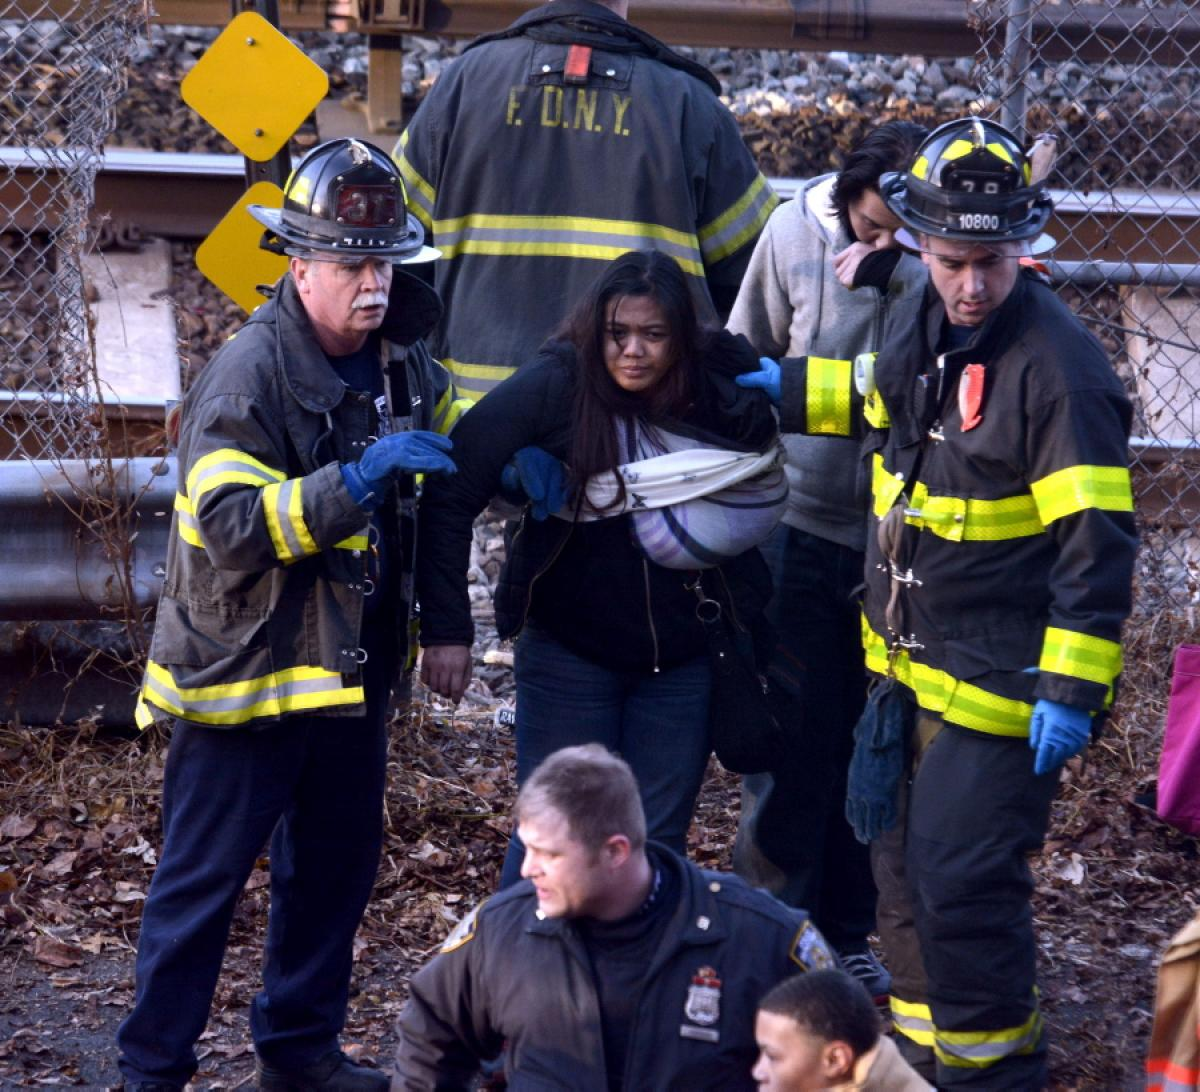 metro-north-train-derails-new-york-4-dead-63-ifddnjured (1)